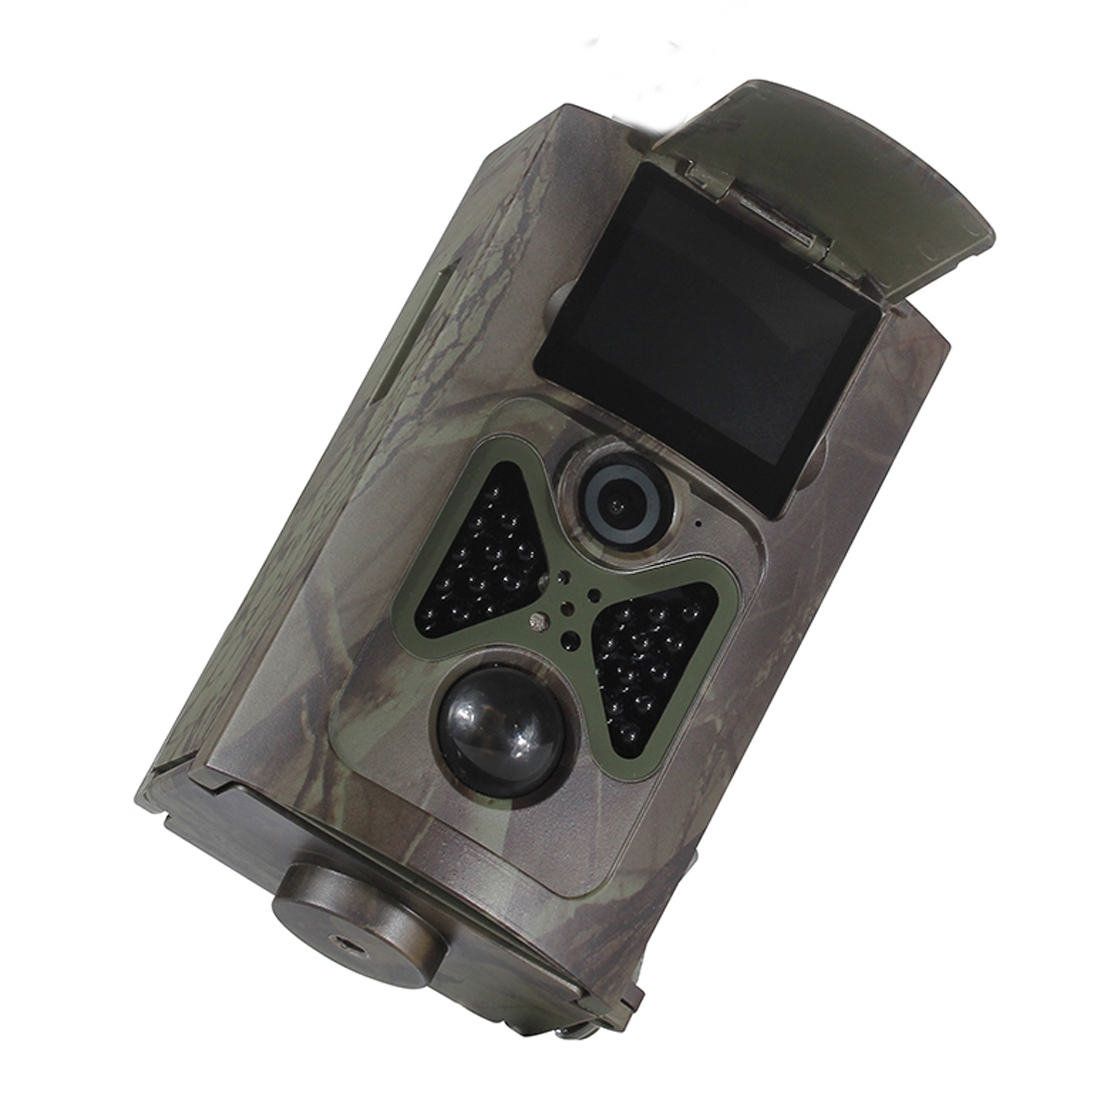 Suntek HC-550A 2.0 inch LCD 16MP Waterproof IR Night Vision Security Hunting Trail Camera, 120 Degree Wide Angle